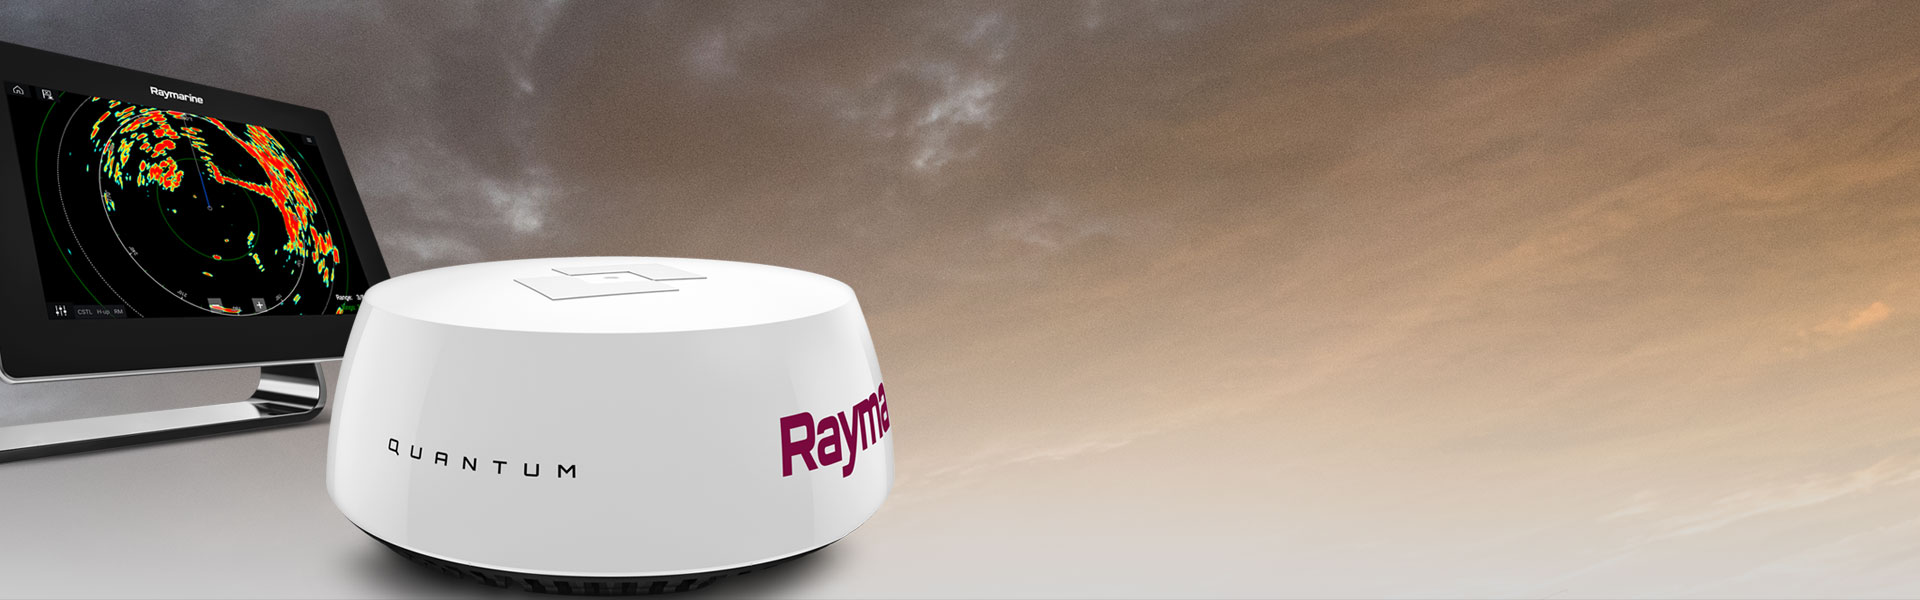 Savings on Axiom and Quantum CHIRP Radar Packages | Marine Electronics by Raymarine